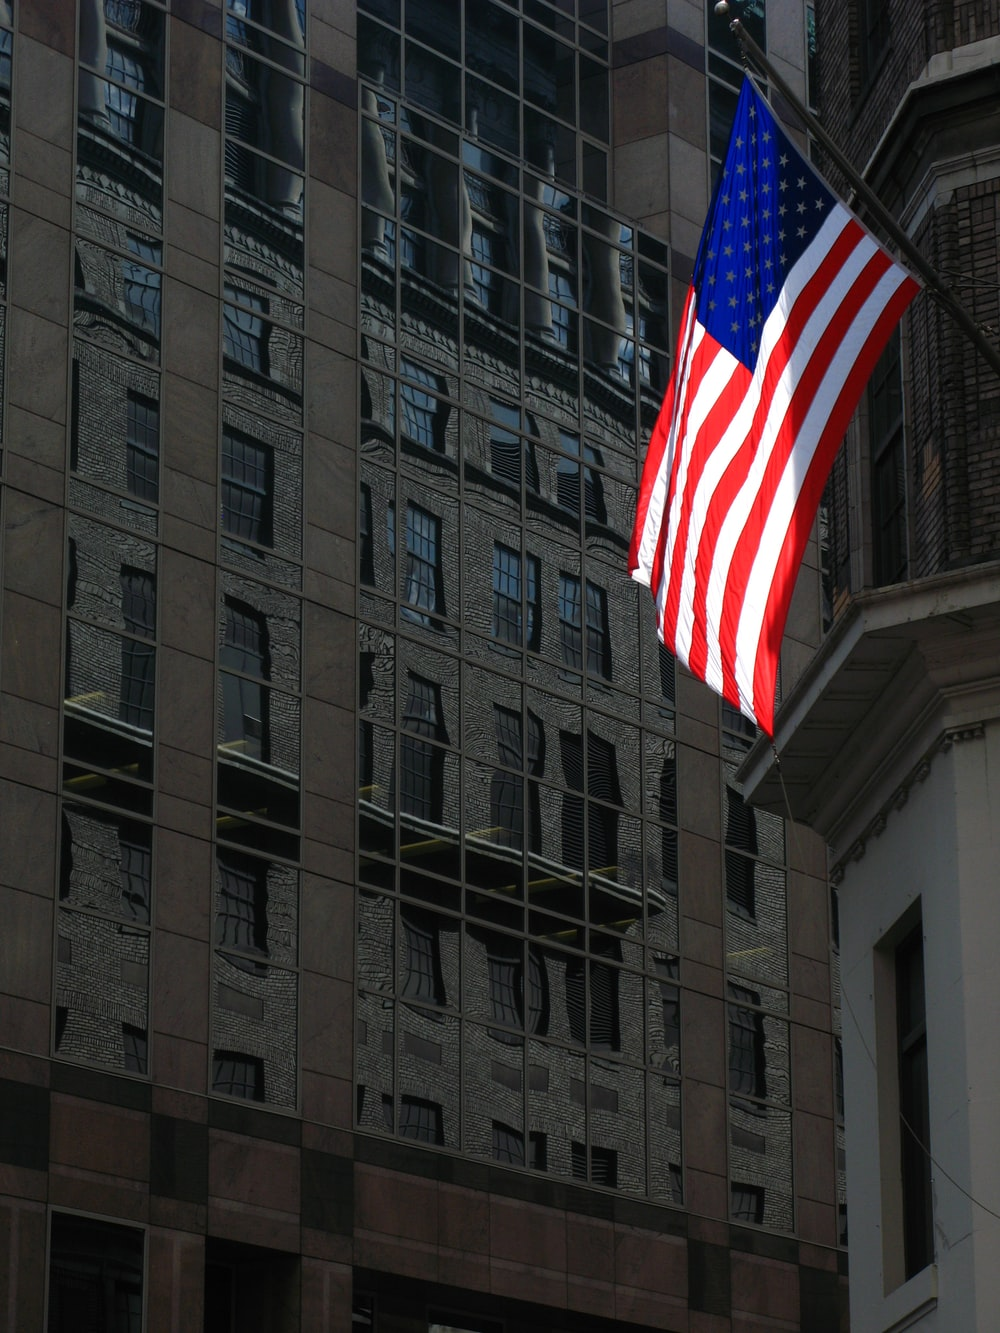 building with United States flag during daytime